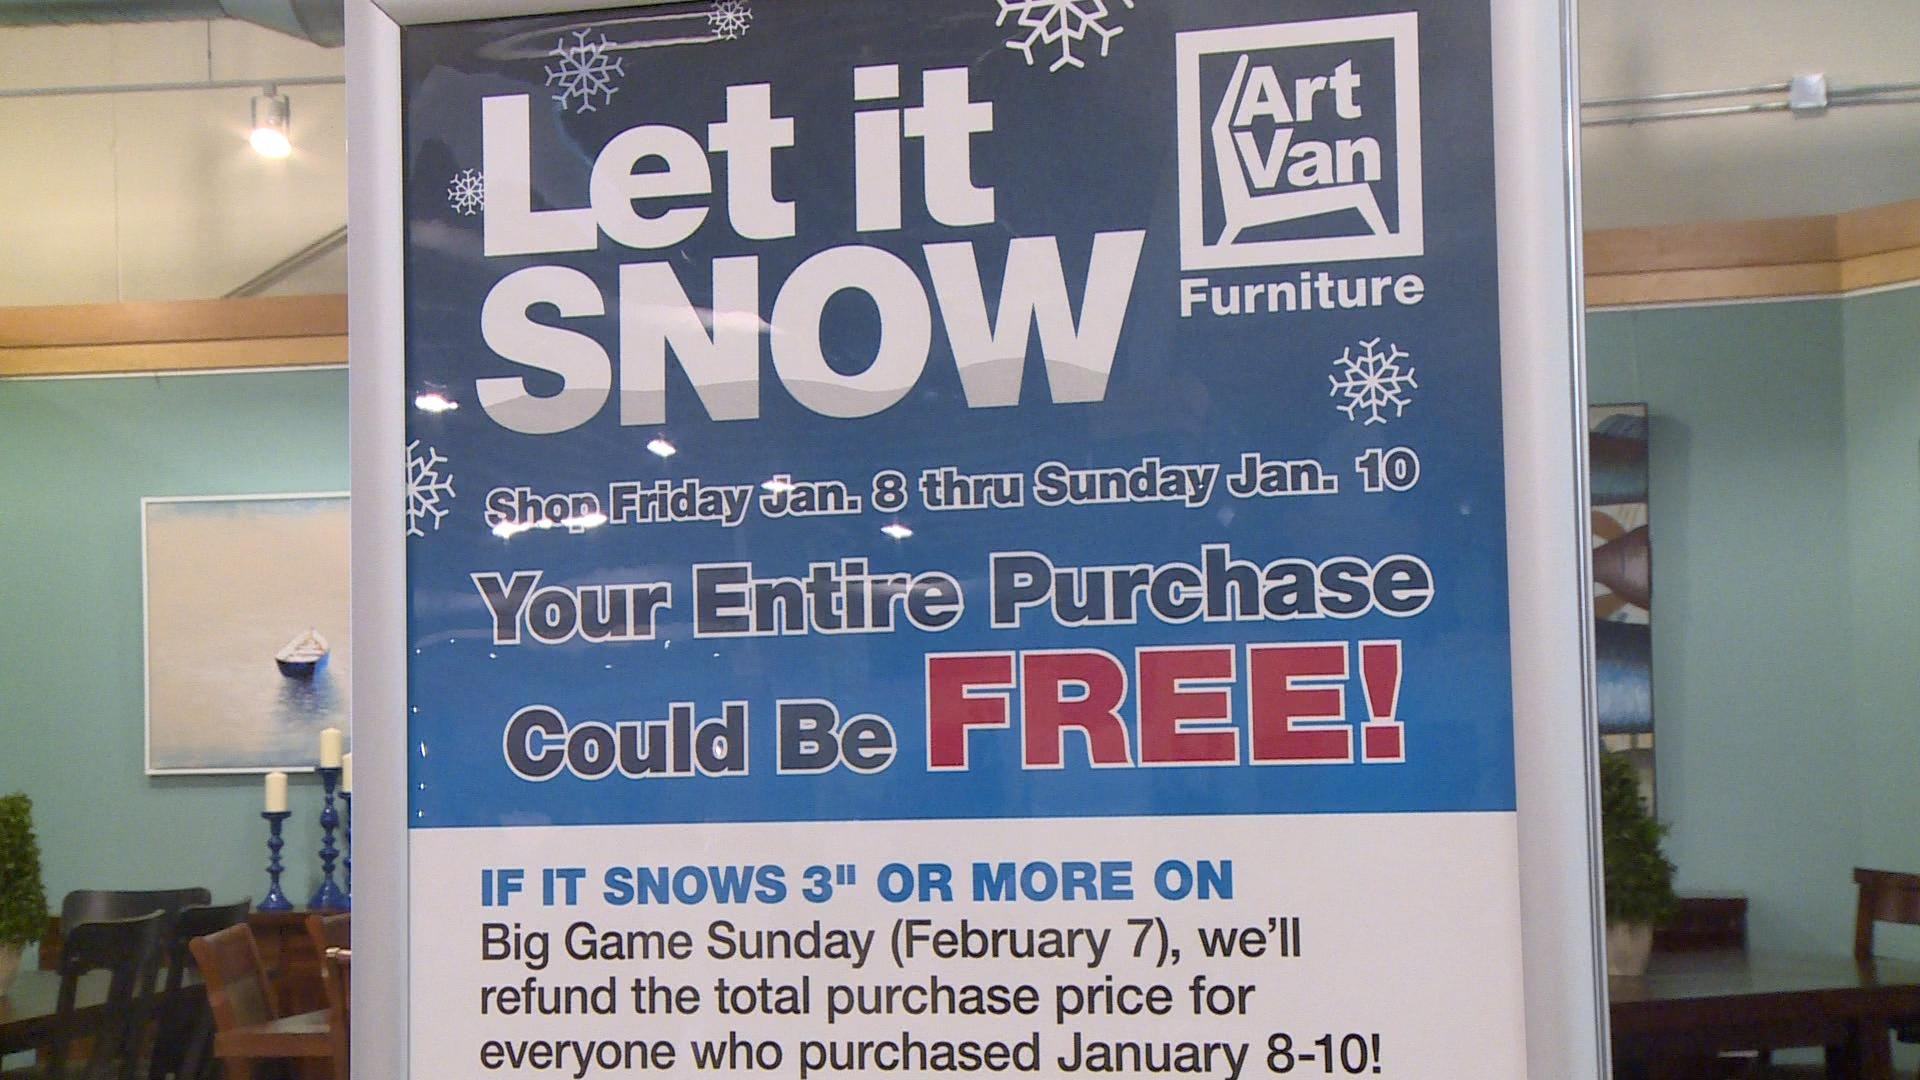 Rockford Furniture Store To Issue Refunds If It Snows On Super B Ktiv News 4 Sioux City Ia